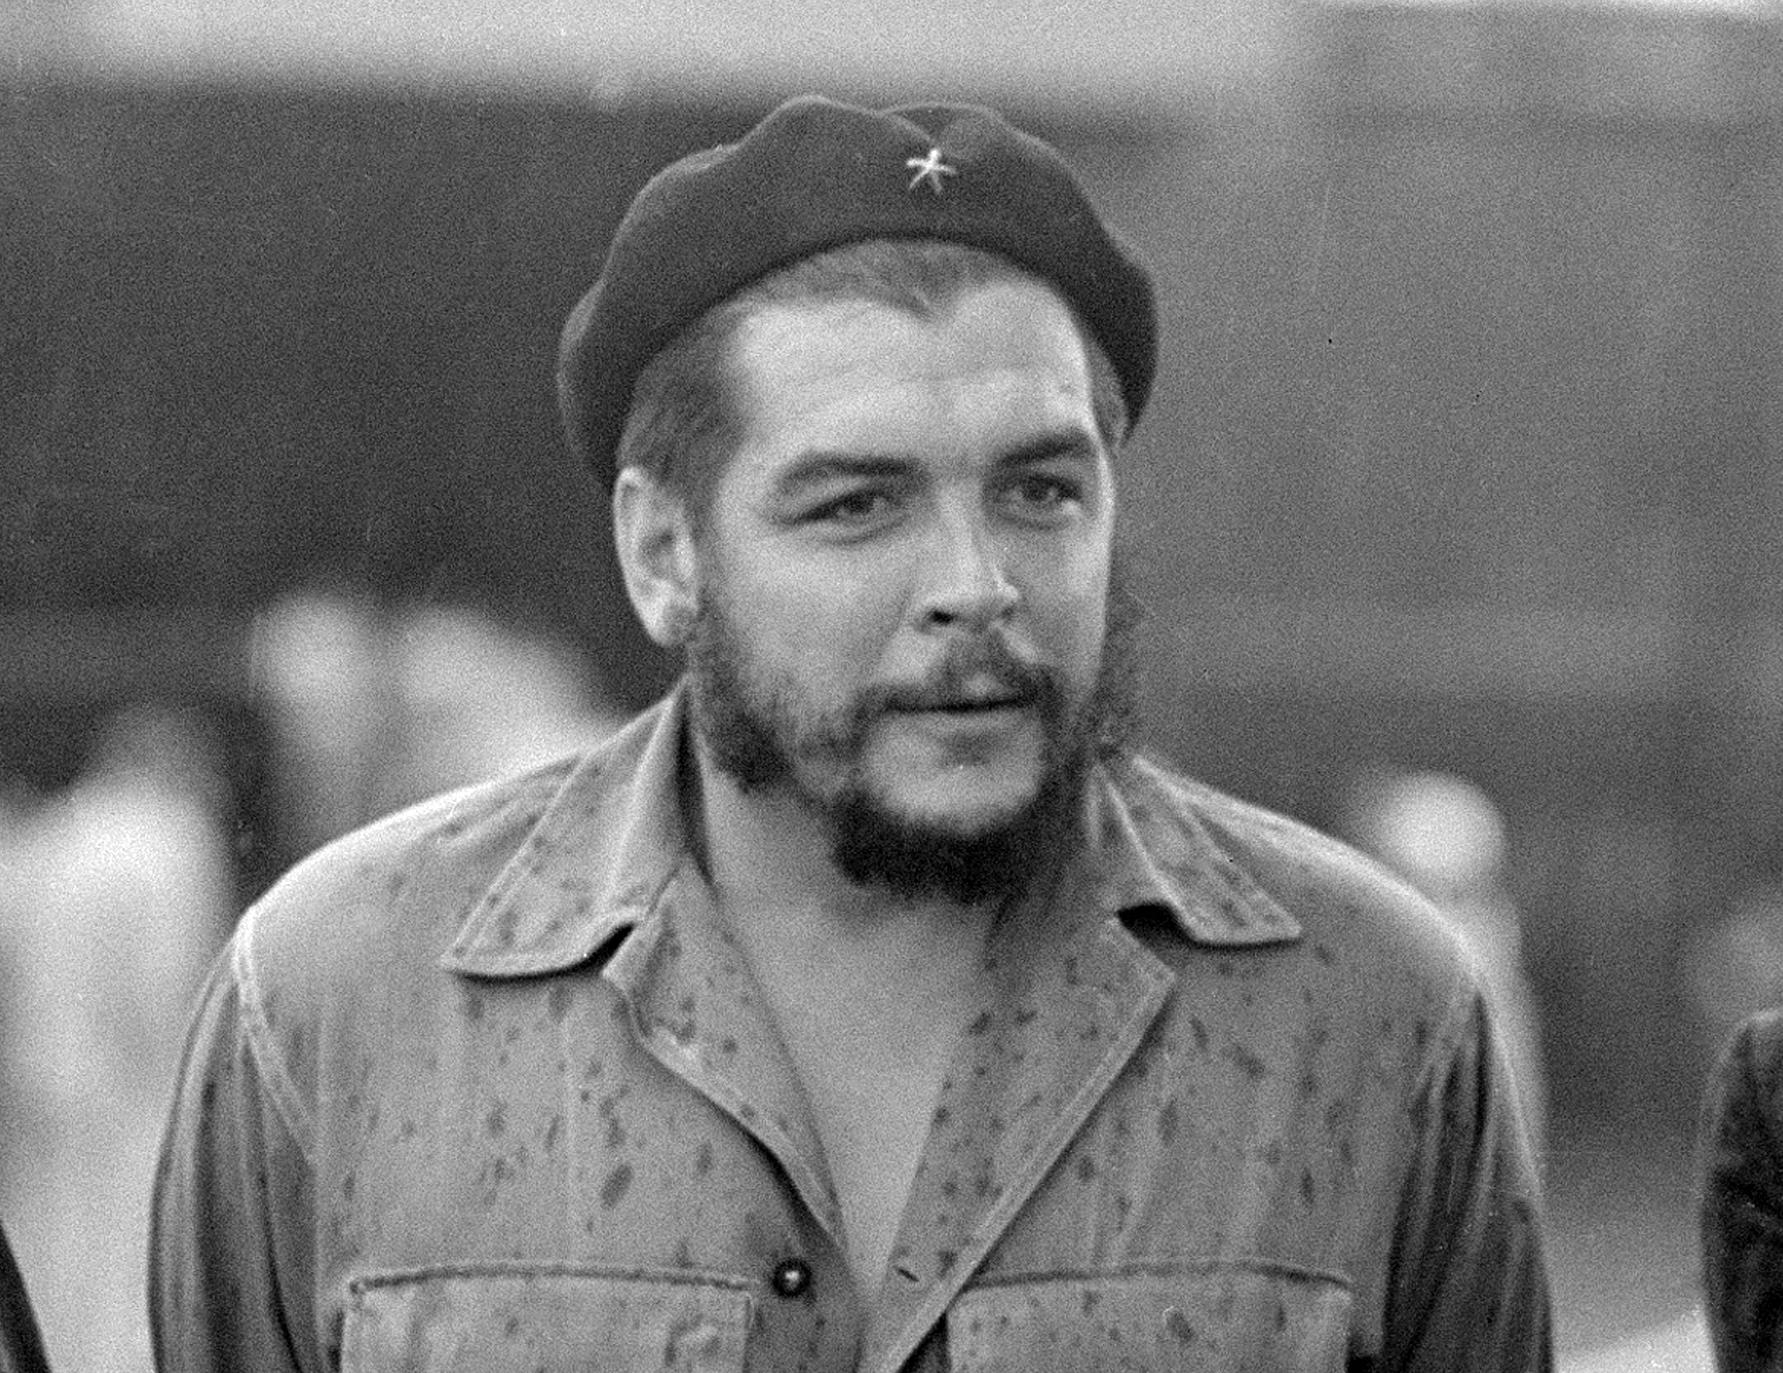 Senators chide NEA for spending taxpayer money on Che Guevara exhibit